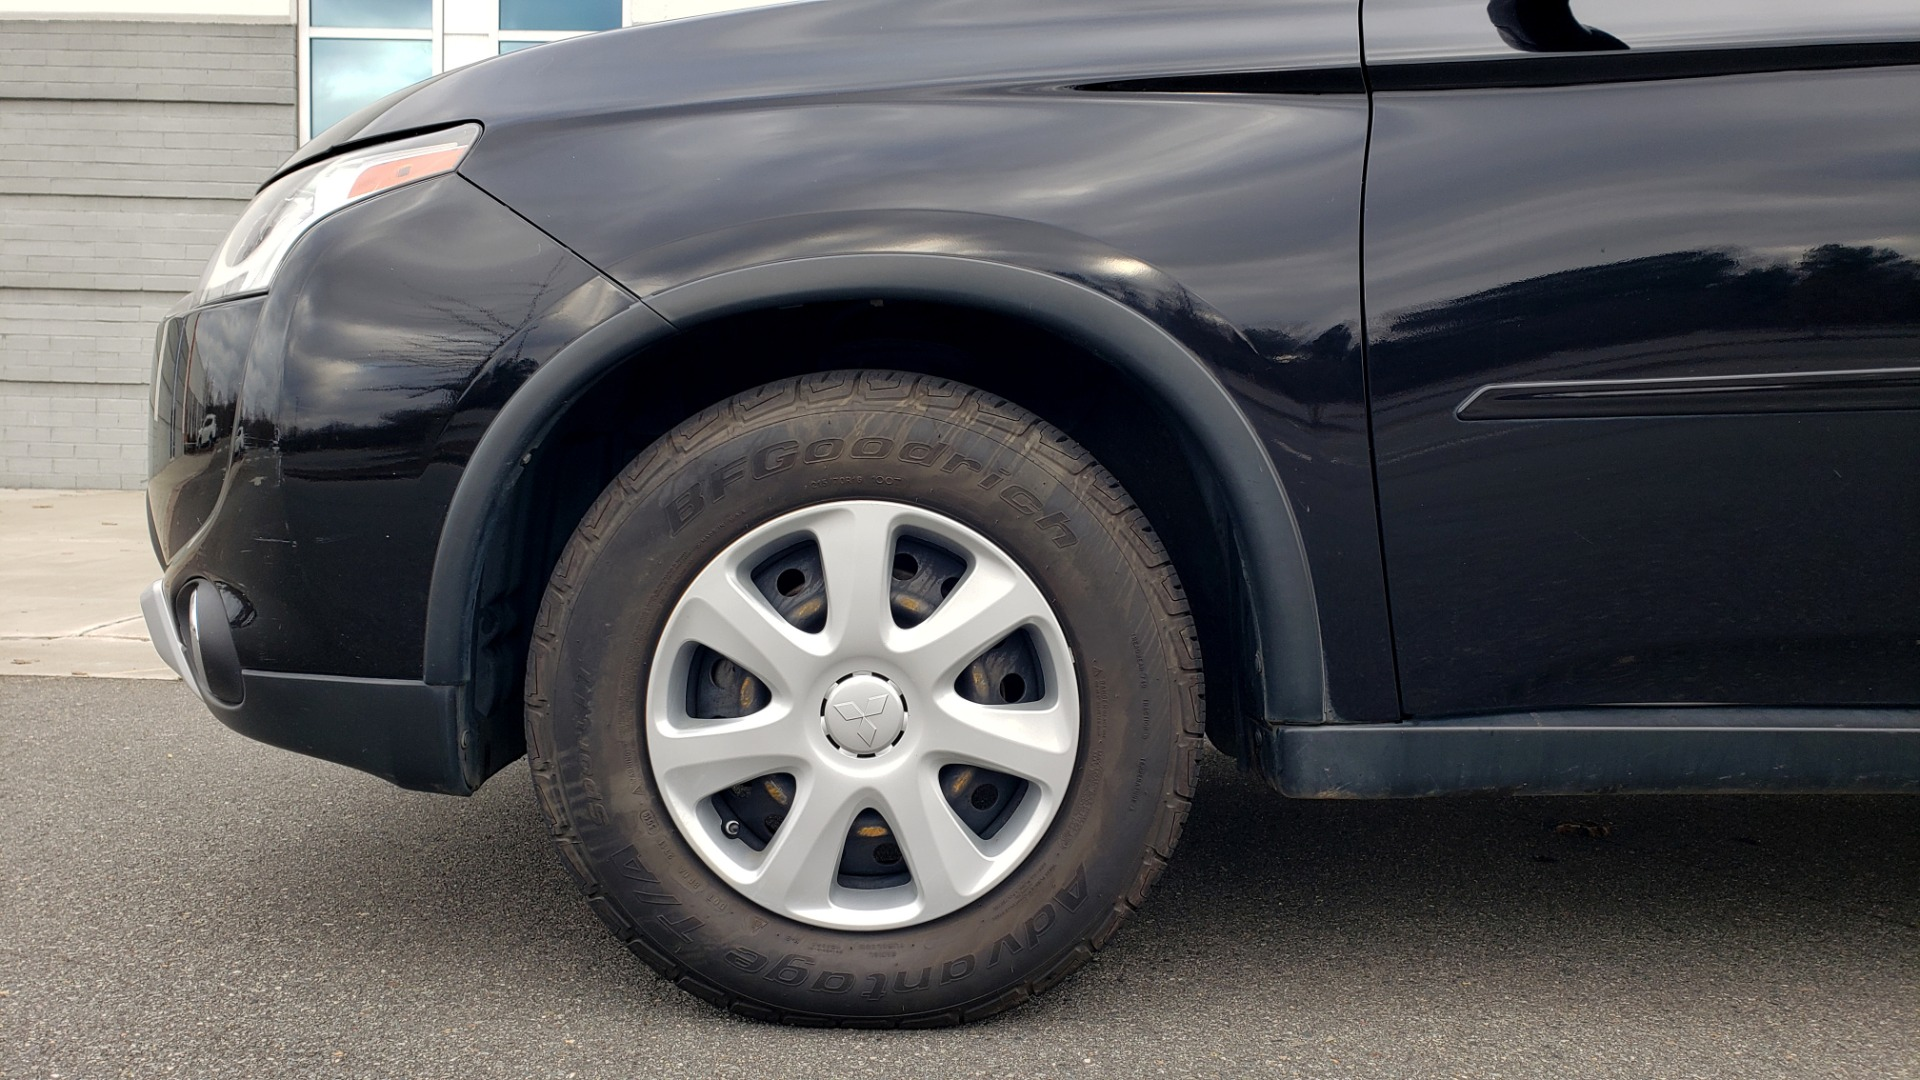 Used 2015 Mitsubishi OUTLANDER ES 2.4L SUV / CVT / FWD / KEYLESS ENTRY / 16-IN WHEELS for sale $12,995 at Formula Imports in Charlotte NC 28227 64